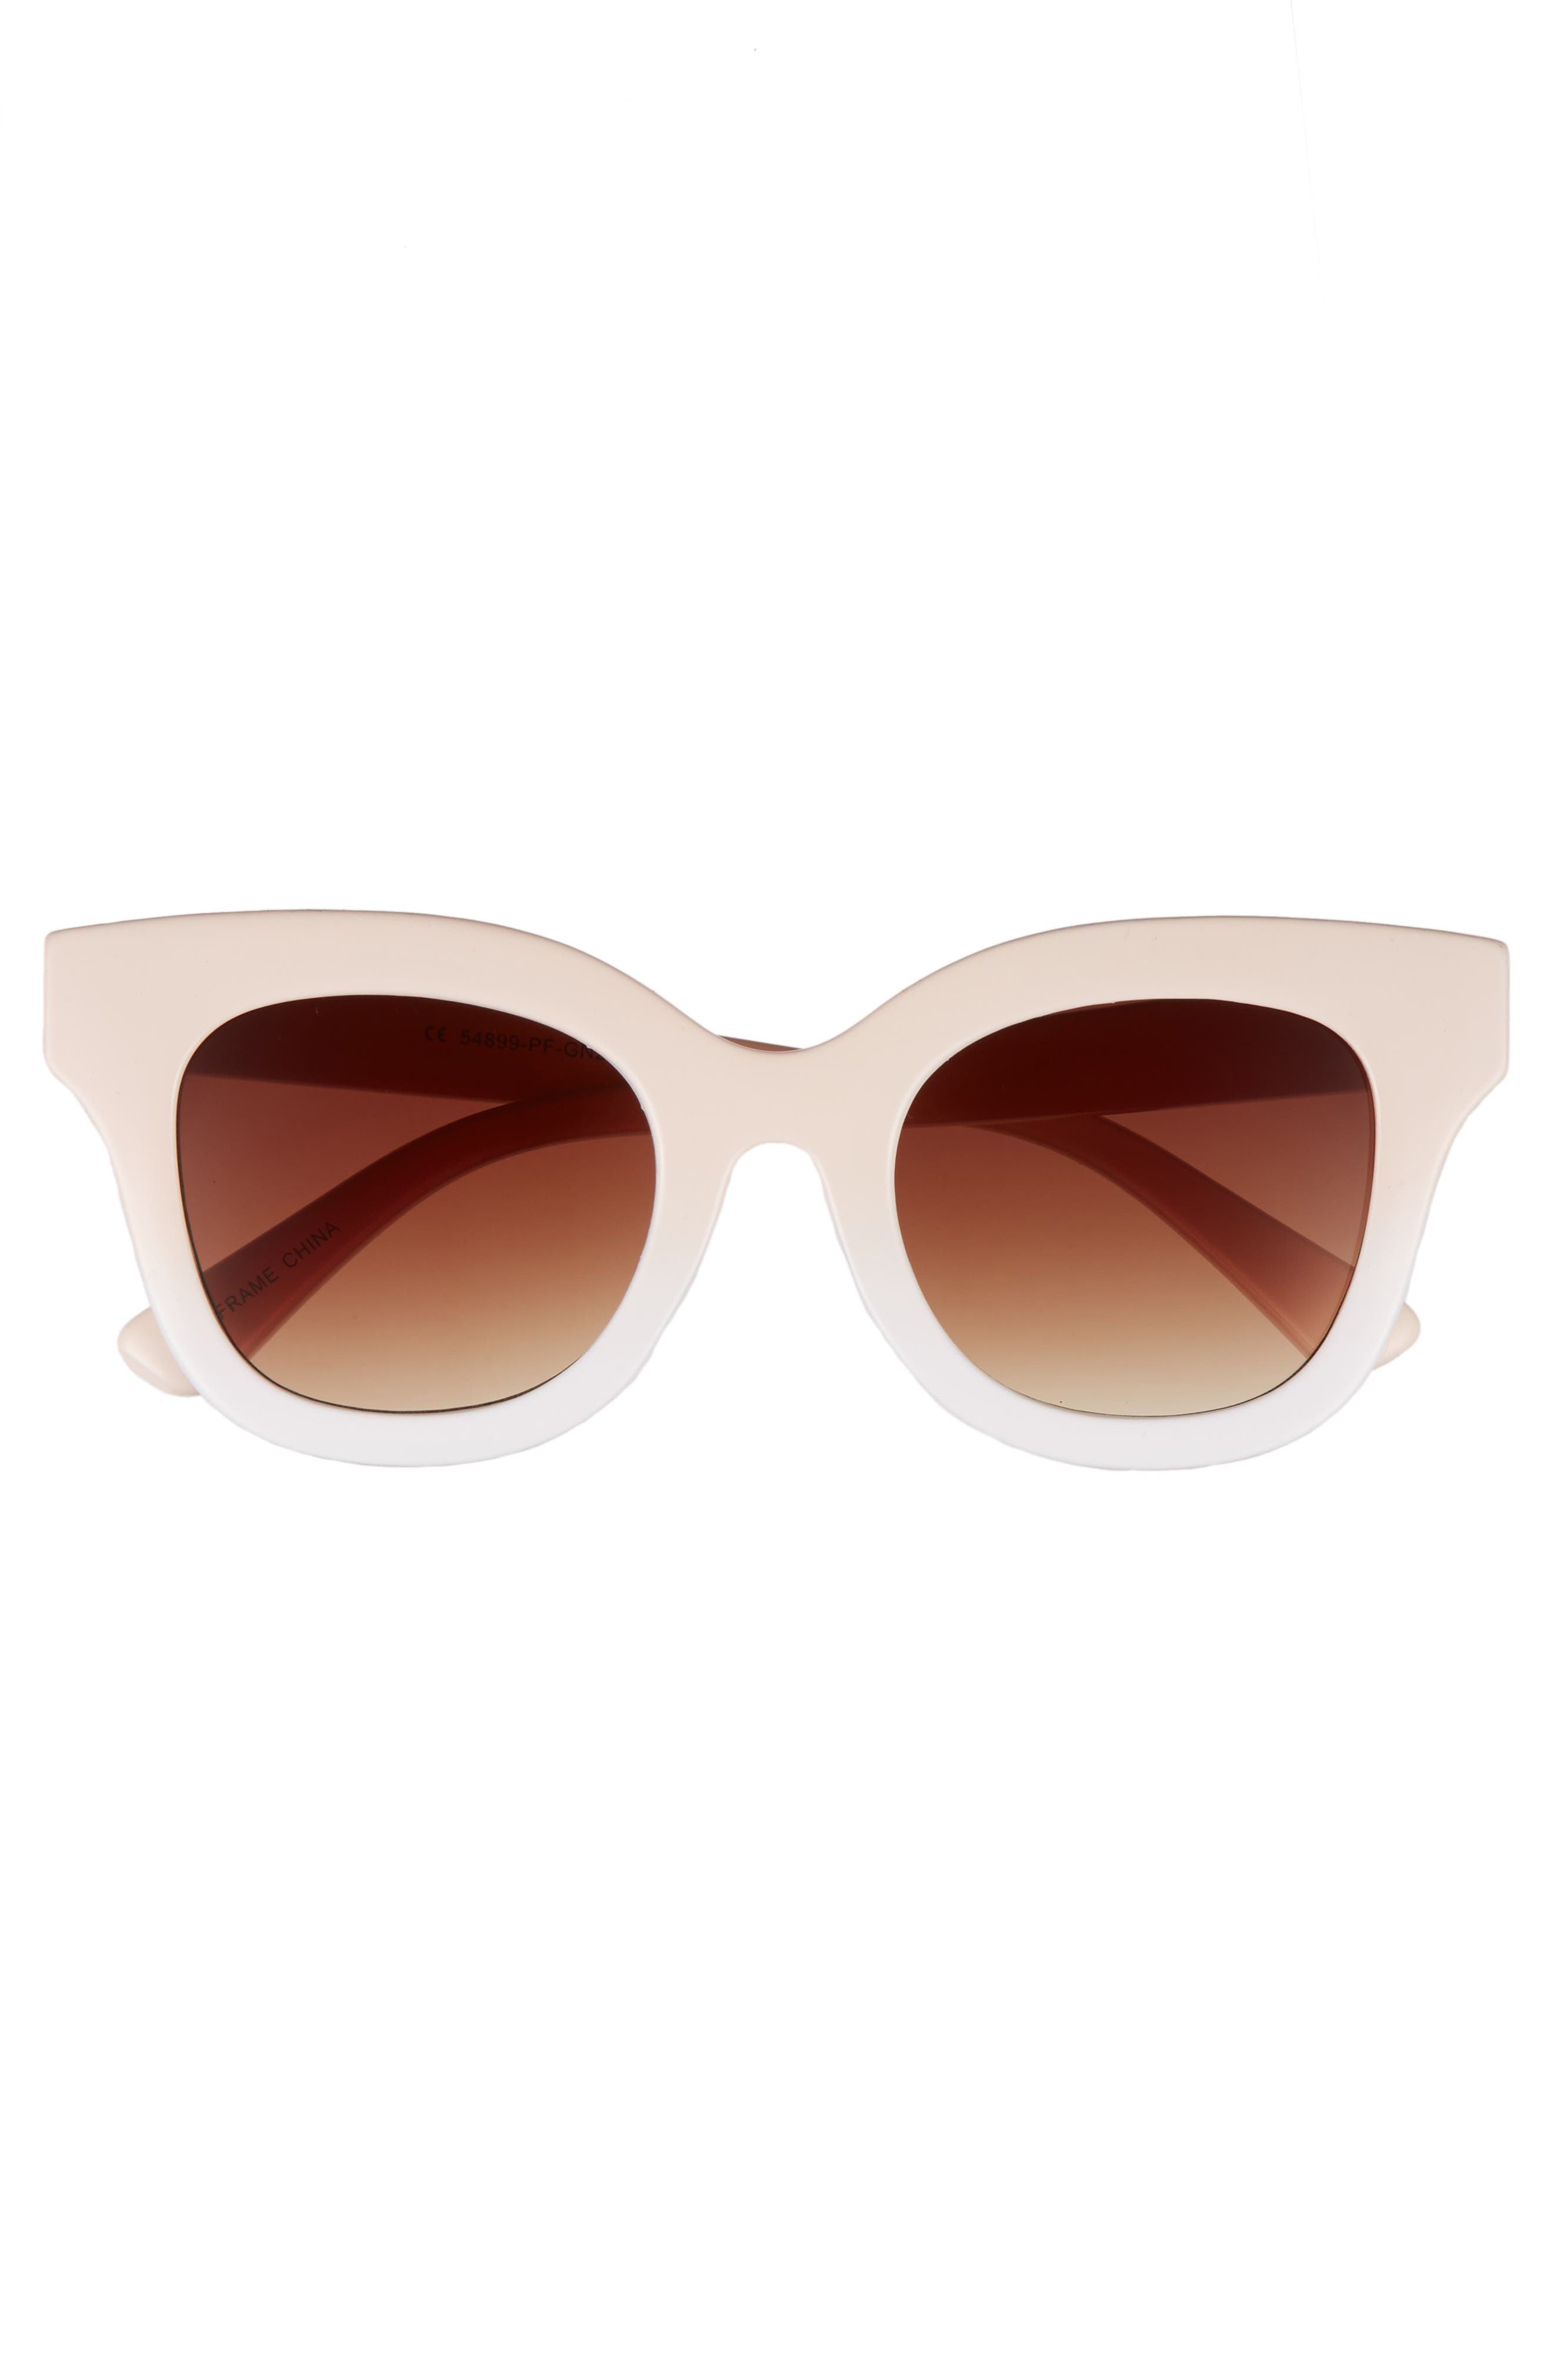 50mm Ombré Square Sunglasses,                             Alternate thumbnail 3, color,                             650